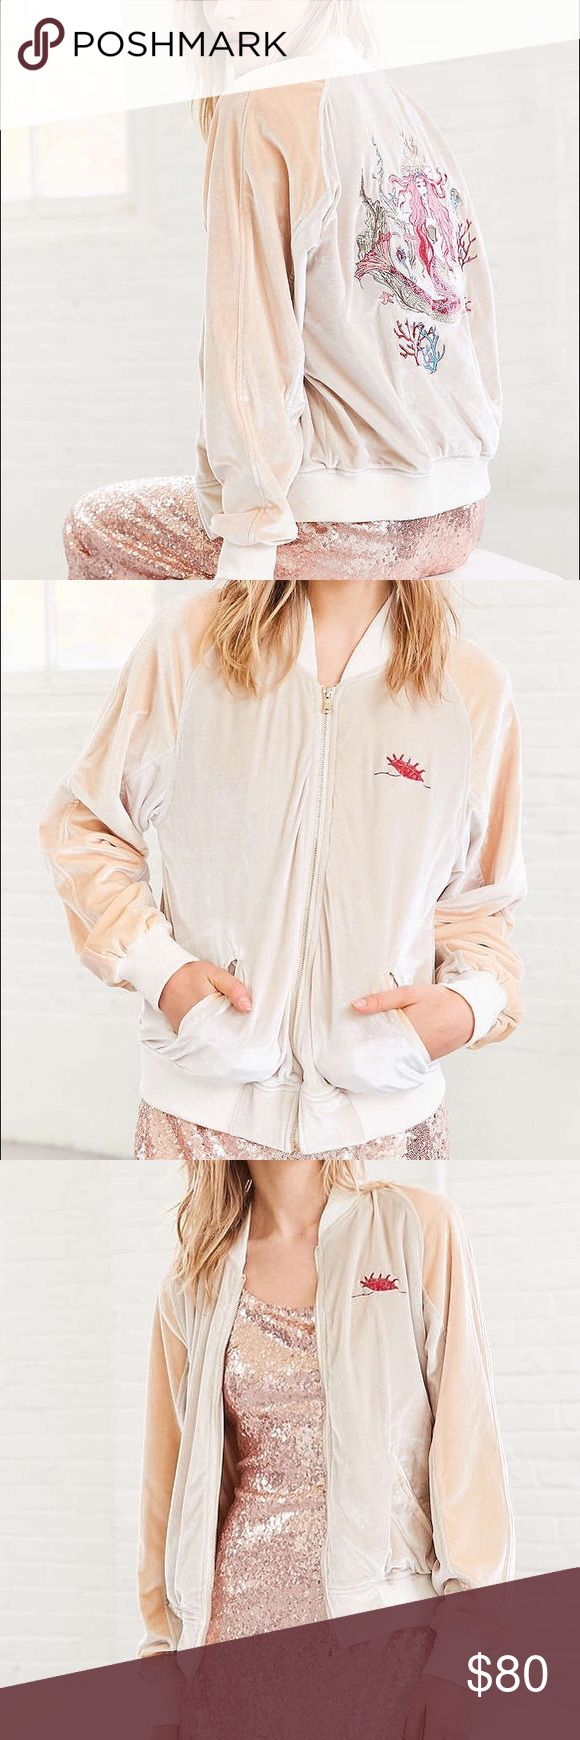 Urban outfitters velvet mermaid bomber Urban outfitters velvet mermaid bomber jacket. Tan. New with tags. Size medium. Silence + noise Urban Outfitters Jackets & Coats